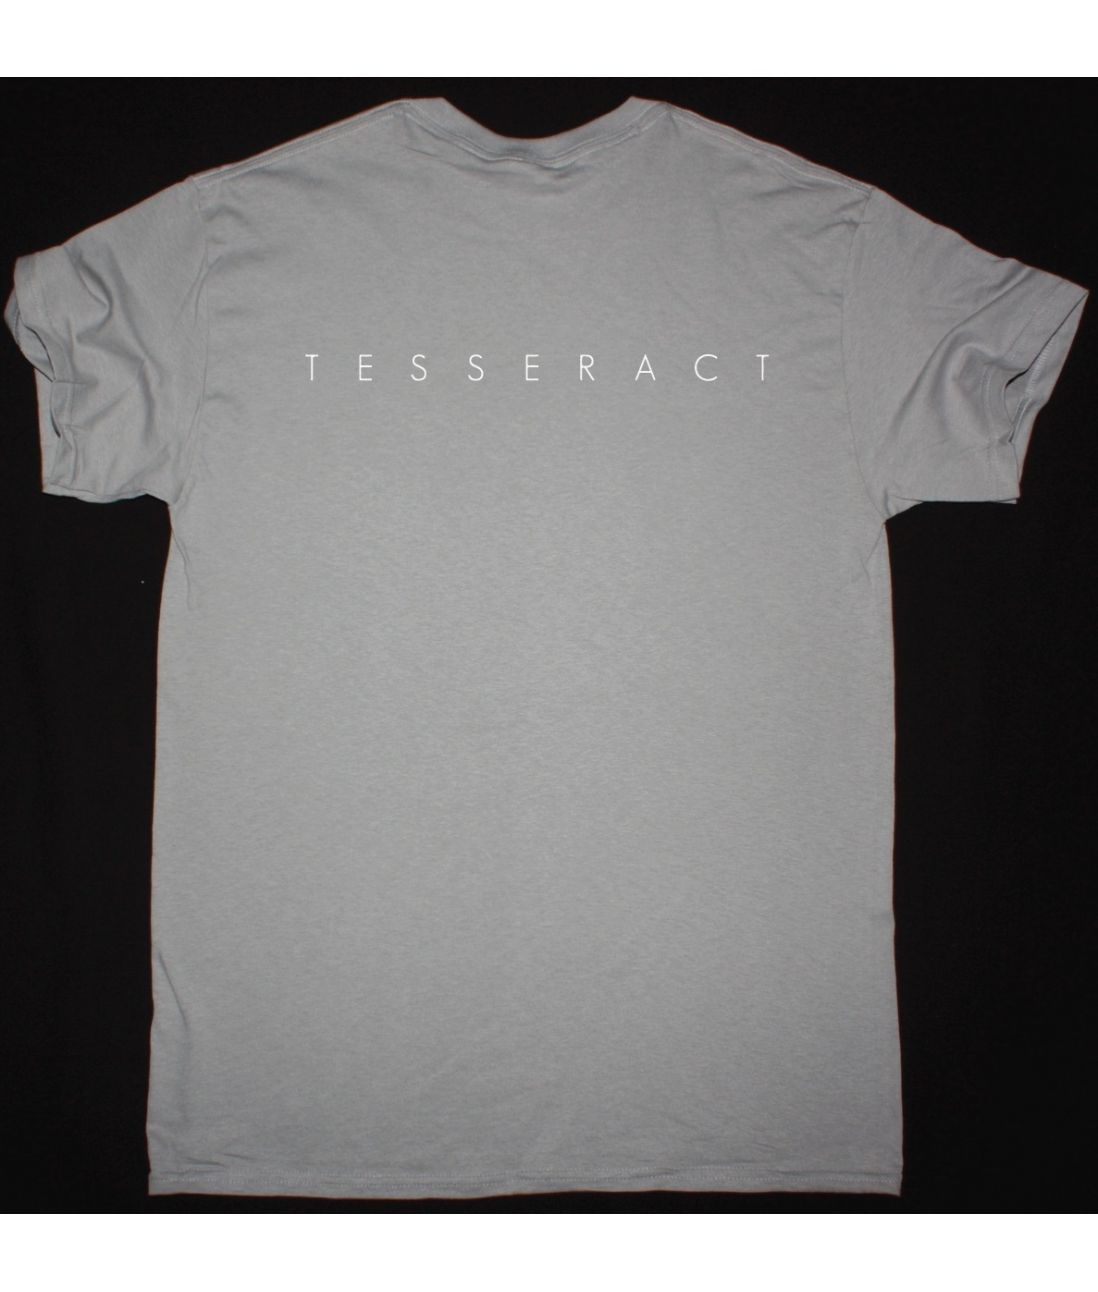 TESSERACT ALTERED STATE NEW LIGHT GREY T SHIRT